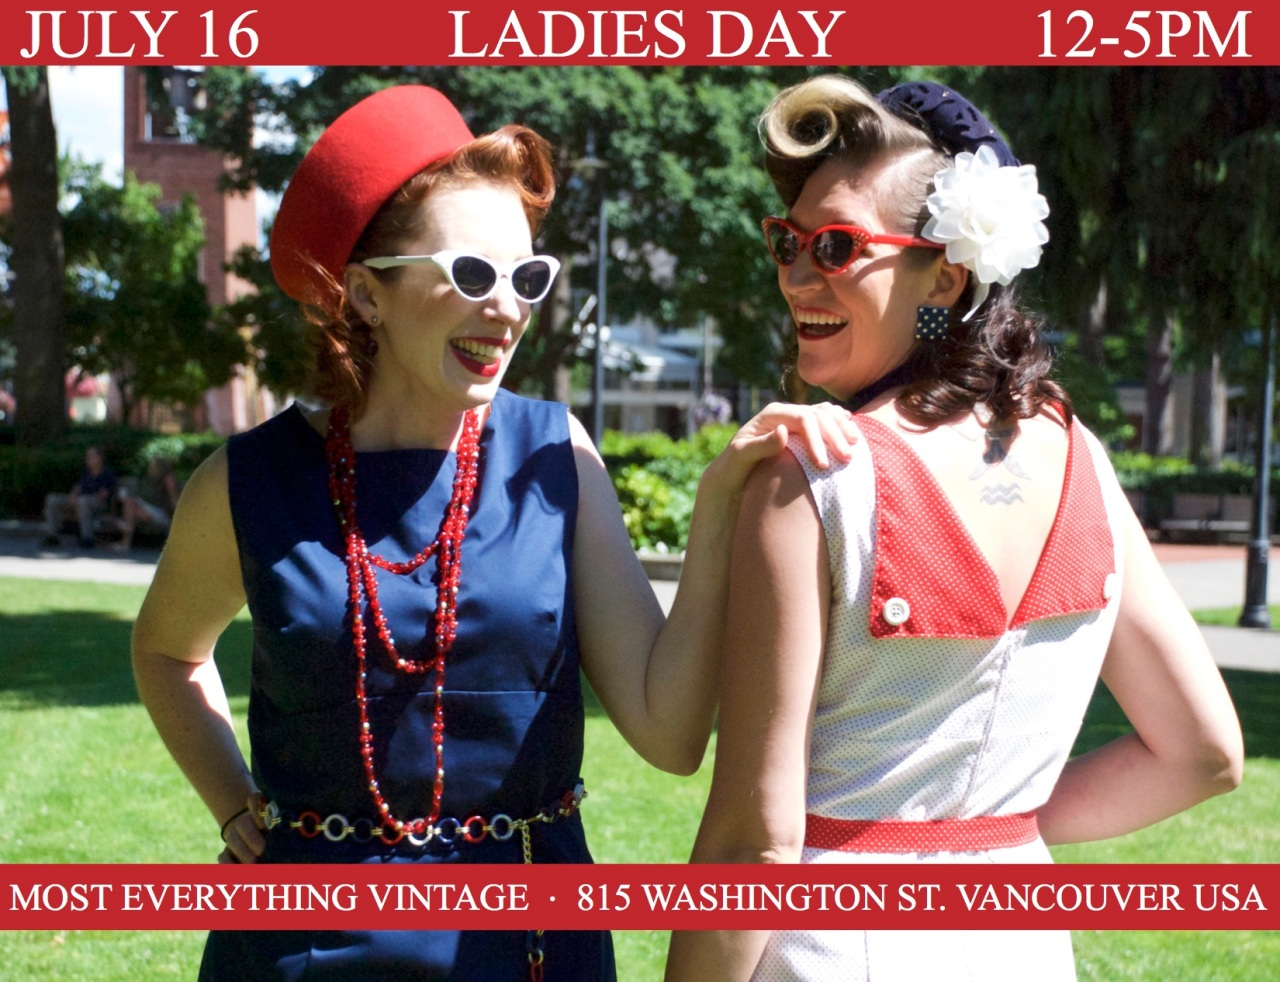 50's Ladies Day Event